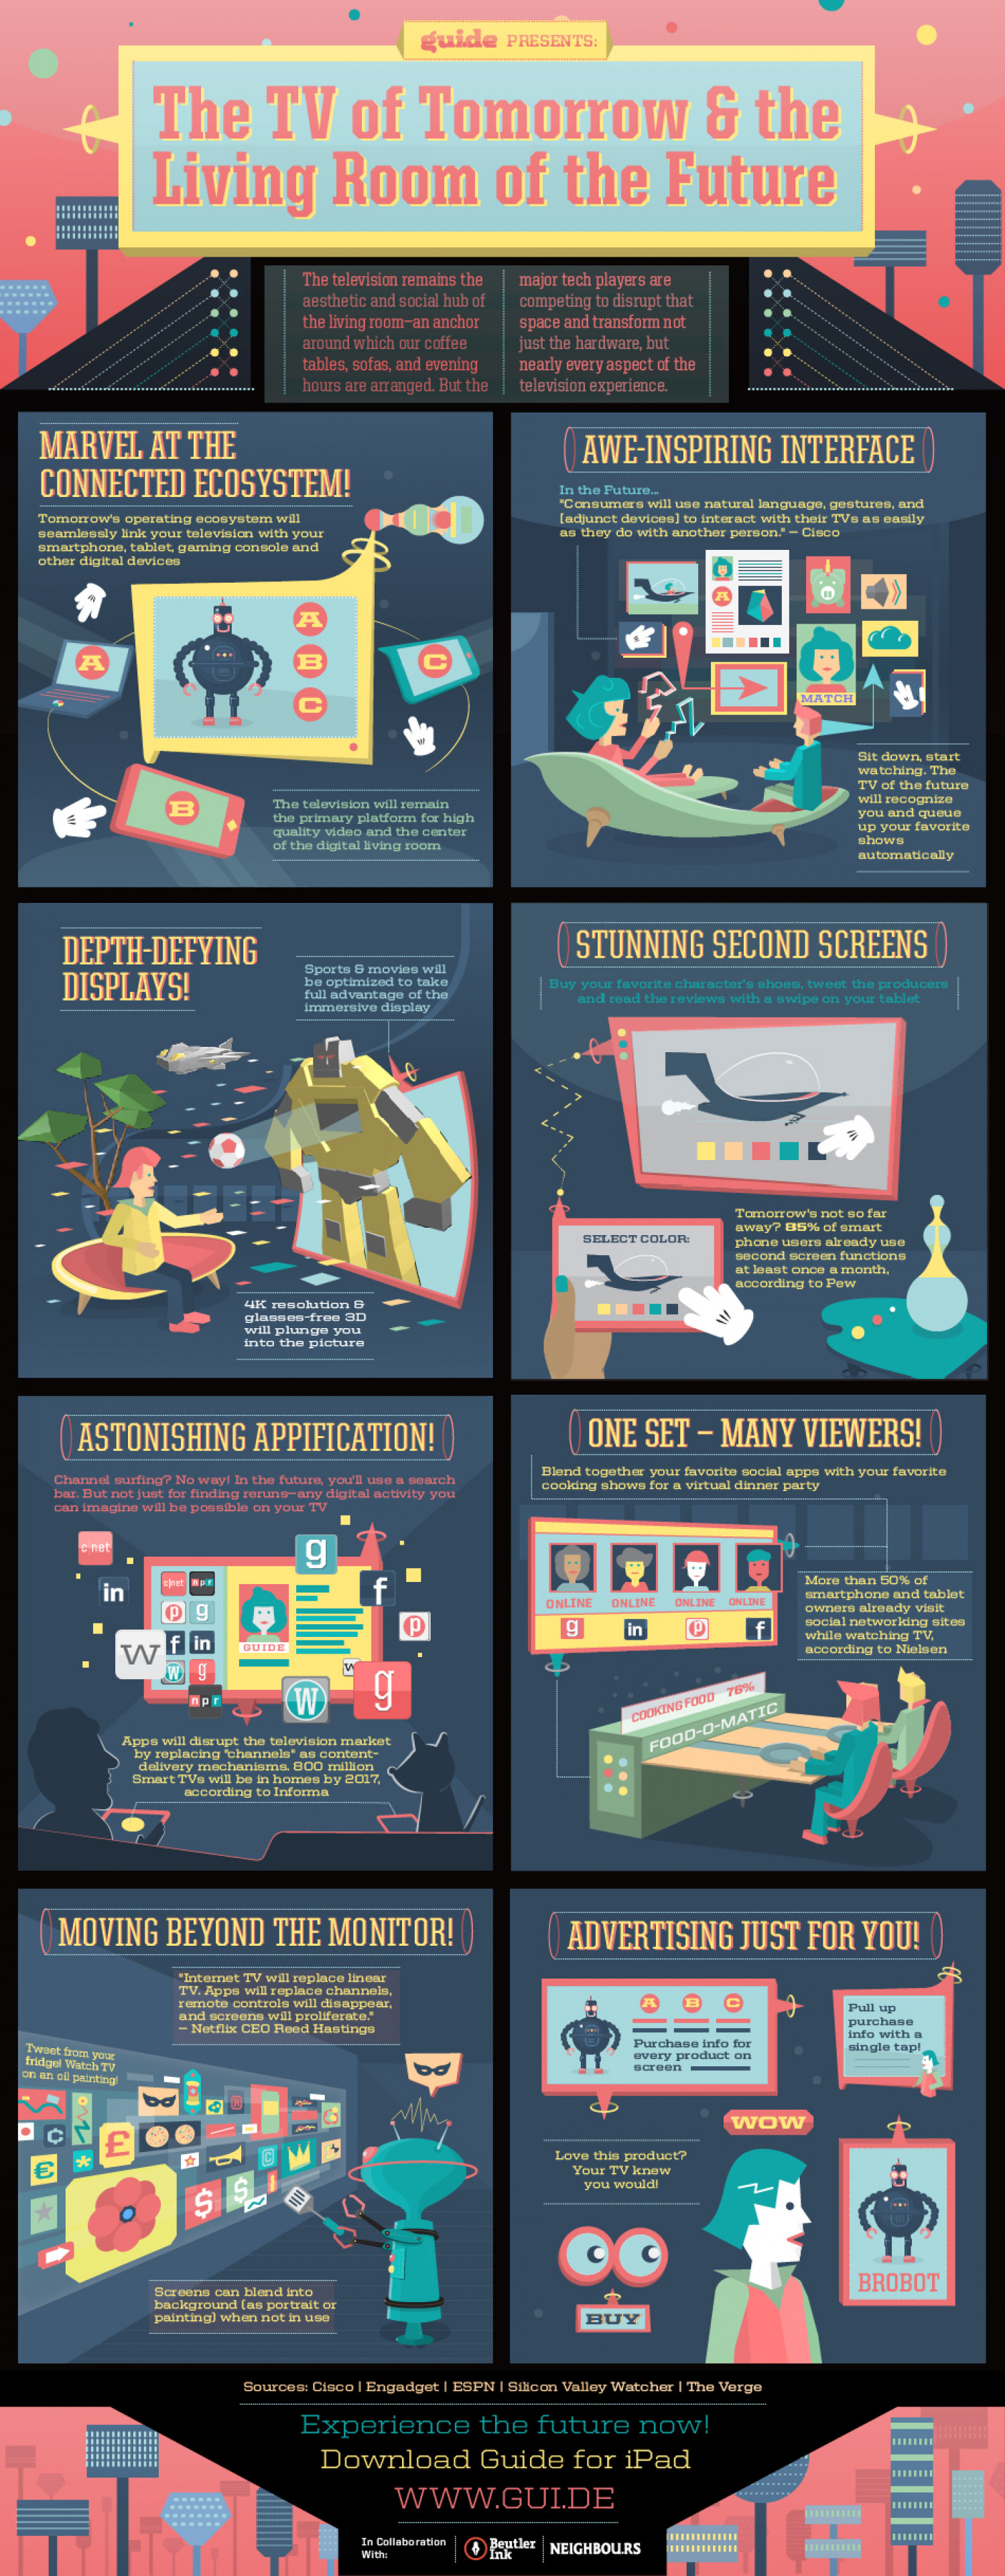 The tv of tomorrow and the living room of the future Infographic